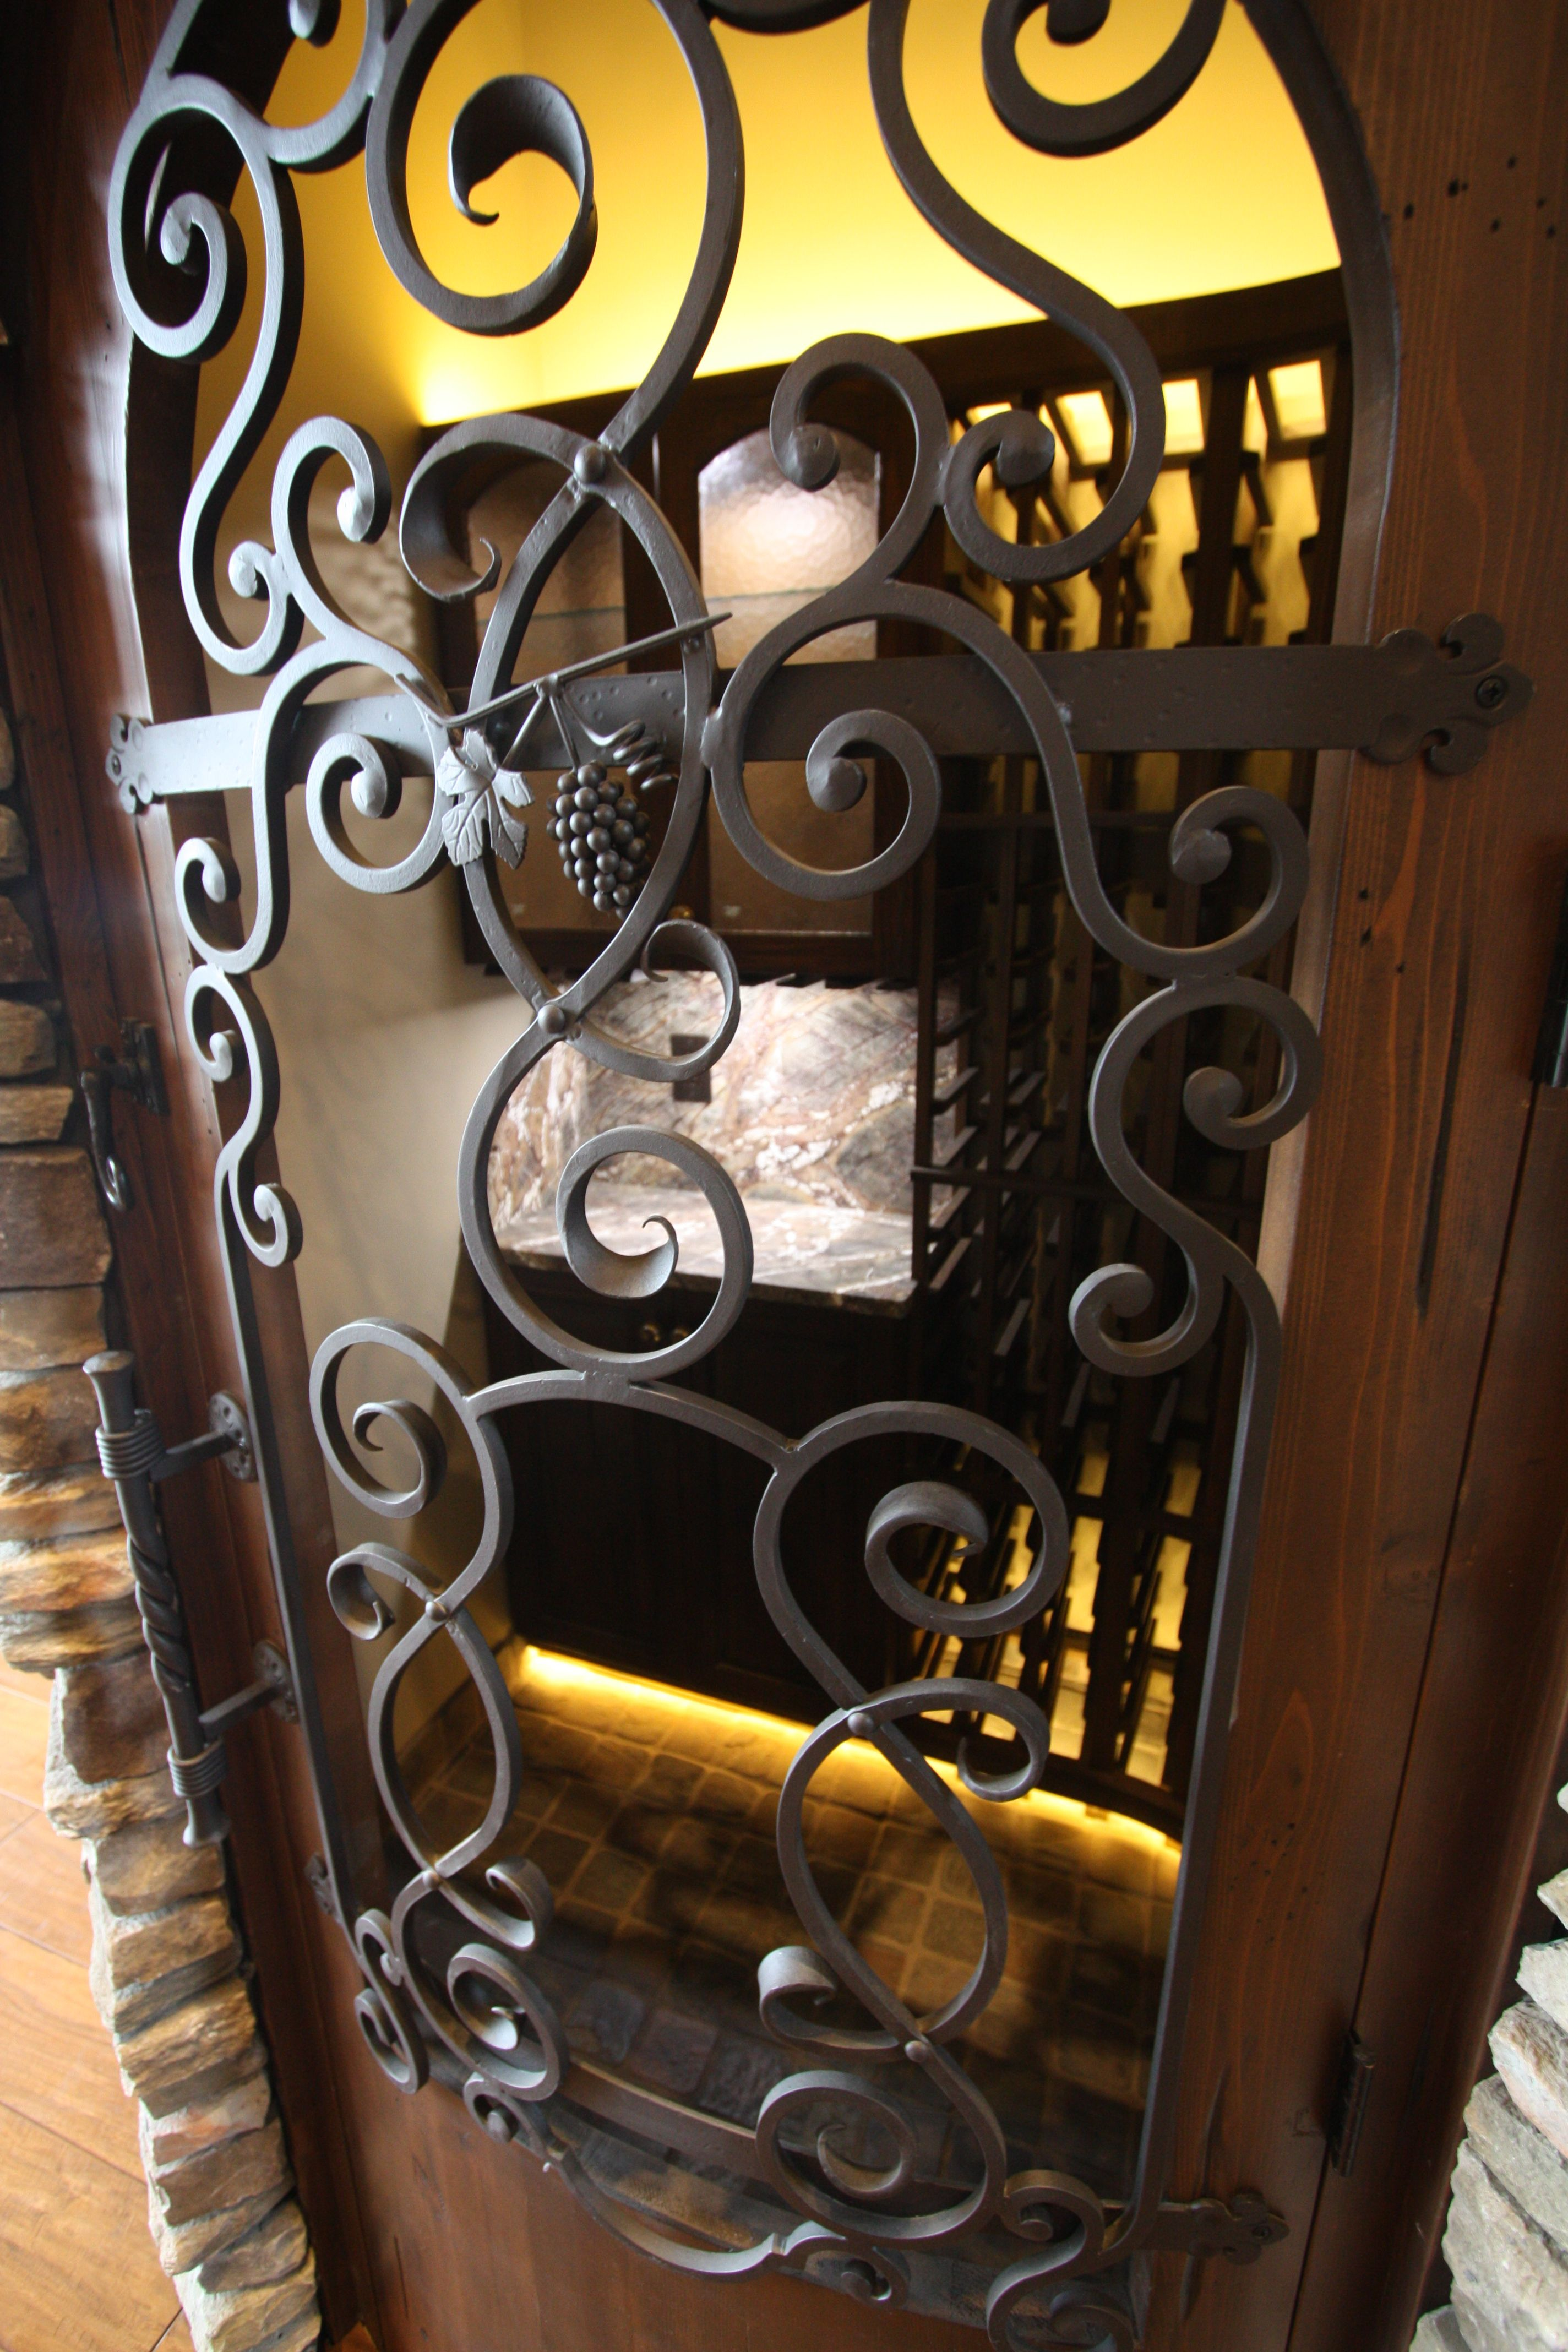 20 Glorious Contemporary Home Bar Designs You Ll Go Crazy For: Hand Forged Iron Scroll Work For A Wine Cellar Door